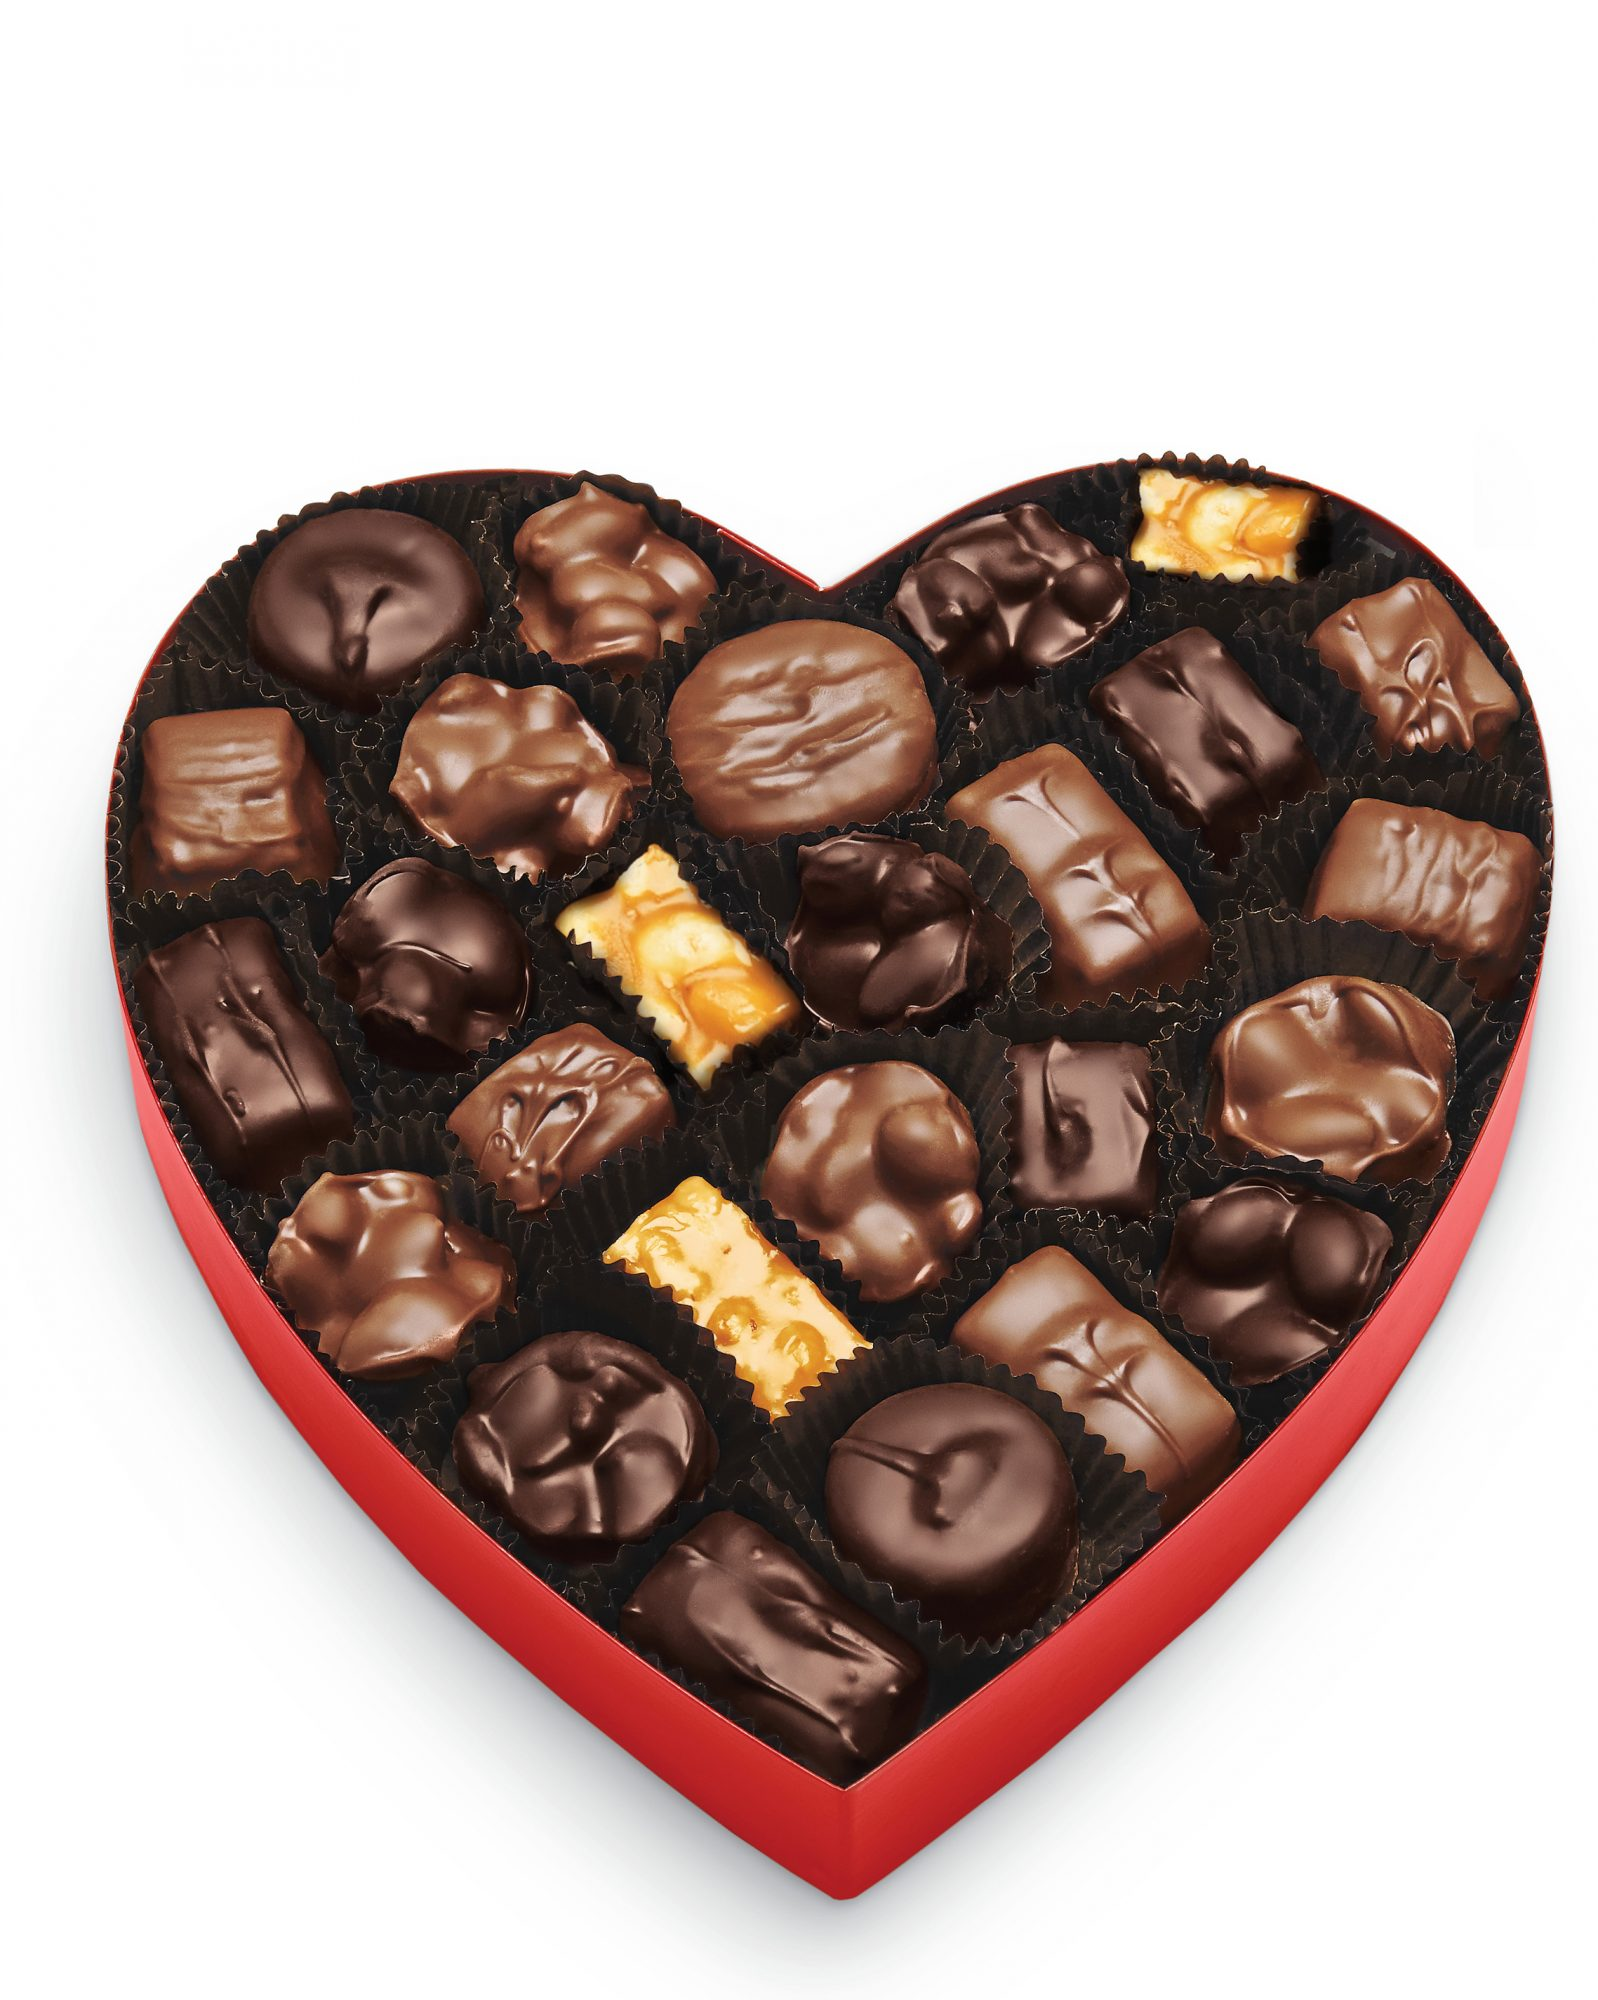 valentines-gift-guide-her-sees-candy-heart-0115.jpg